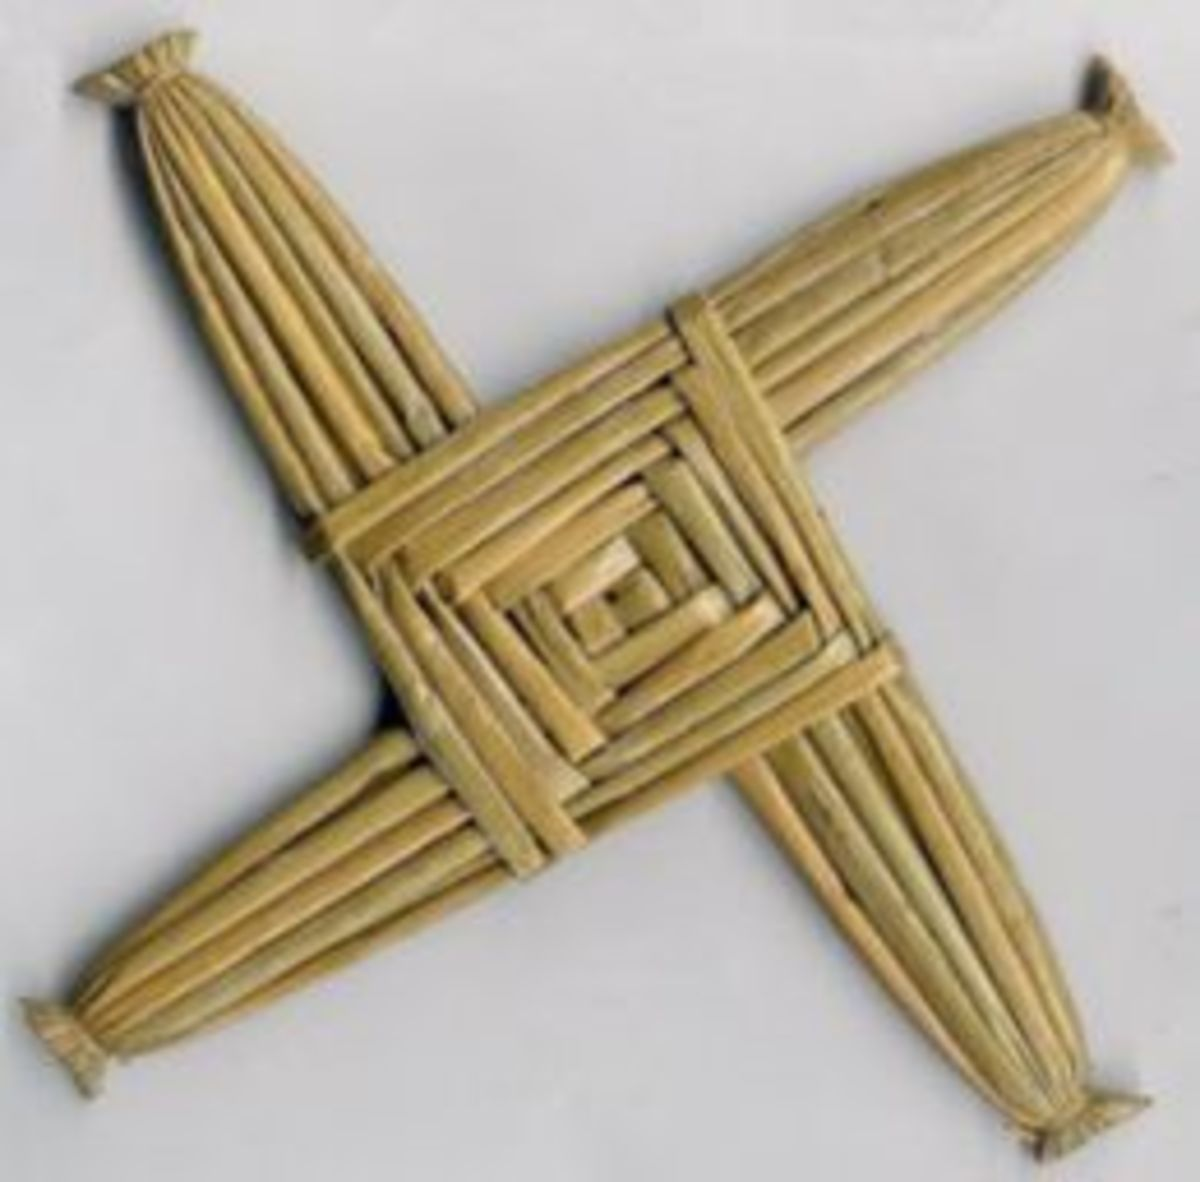 St. Brigid's crosses can be found in gift shops all over Ireland, but I think the best ones are the crosses you make yourself. Check the links at the bottom of the page to learn how!